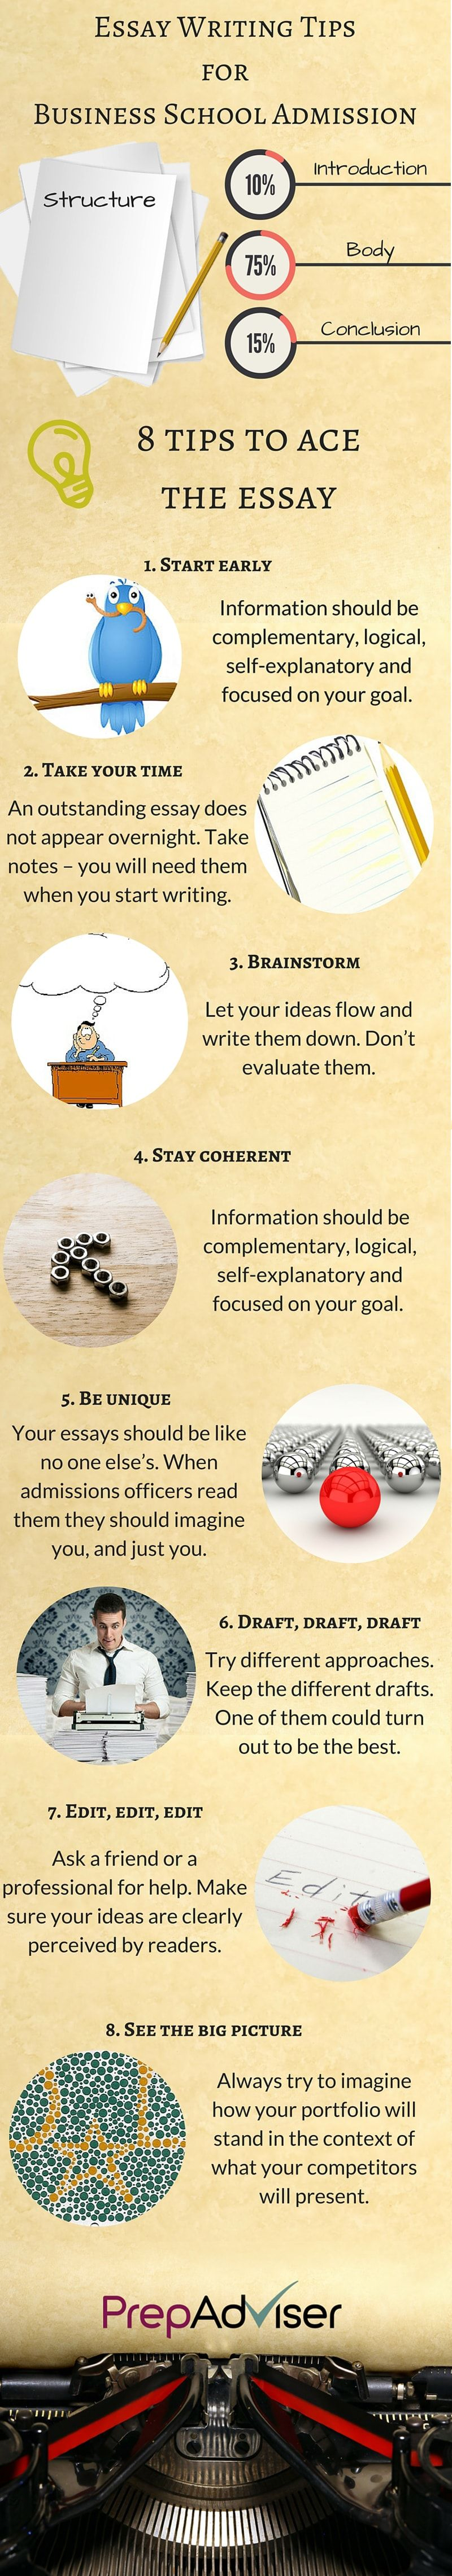 Very Informative Infographic About Tips In Essay Writing For B